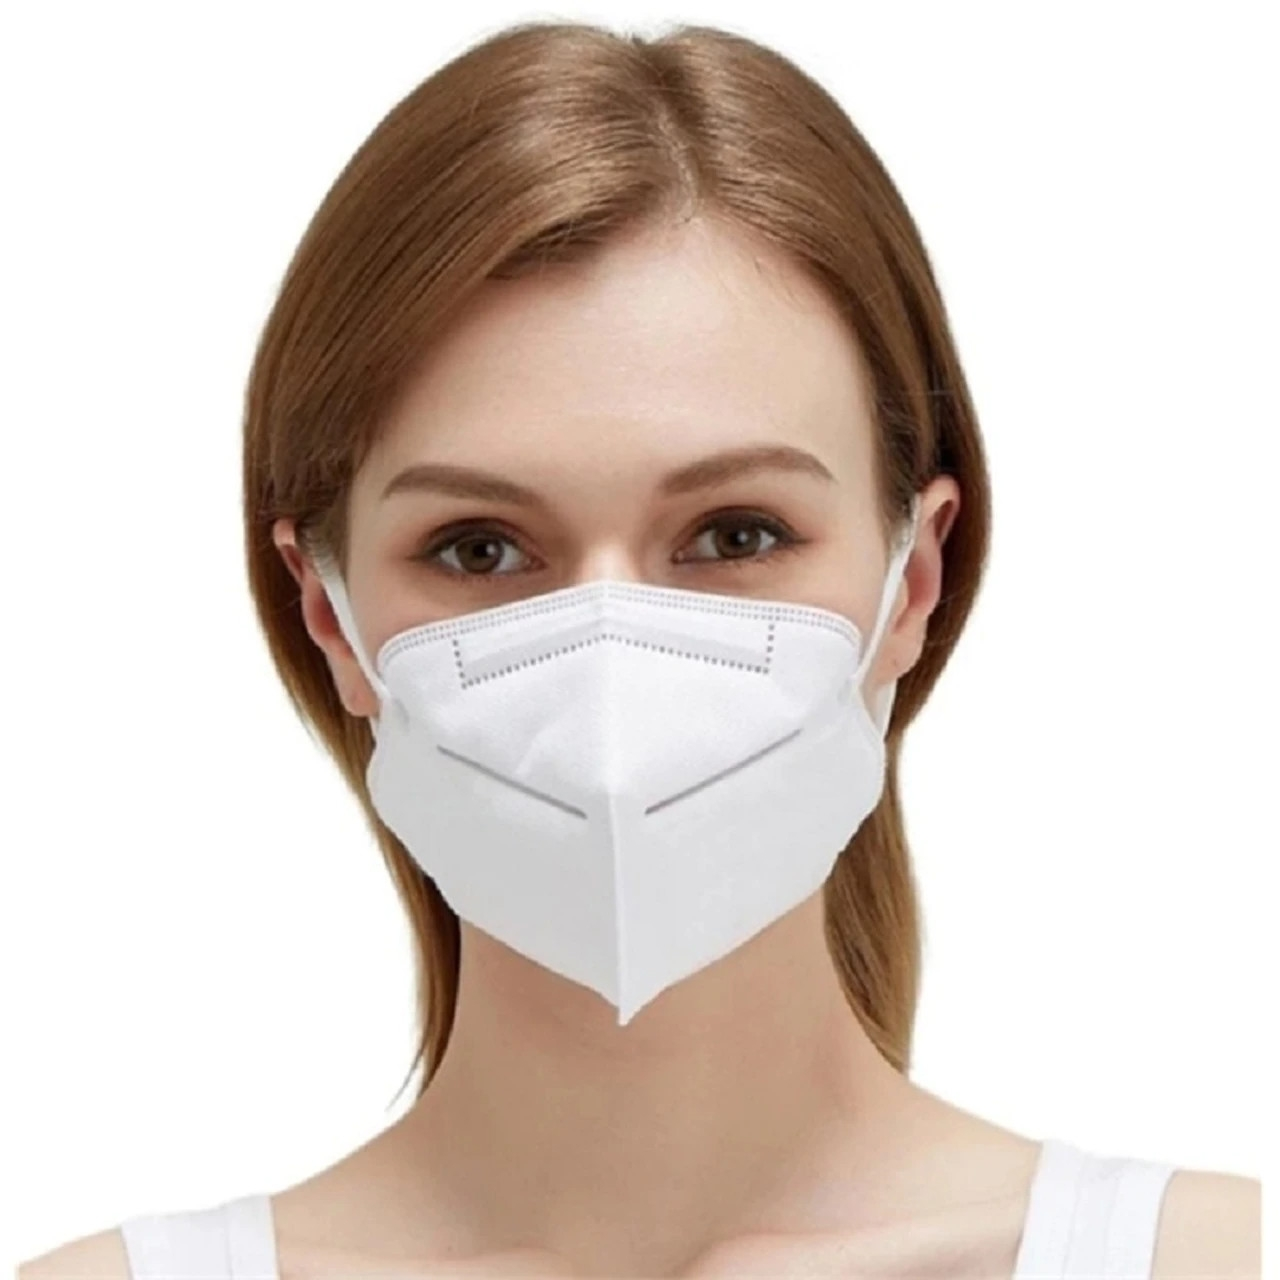 Reusable Kn90 FFP2 Non Medical 5 Layers Dustproof Face Mask For Daily Use Manufactures